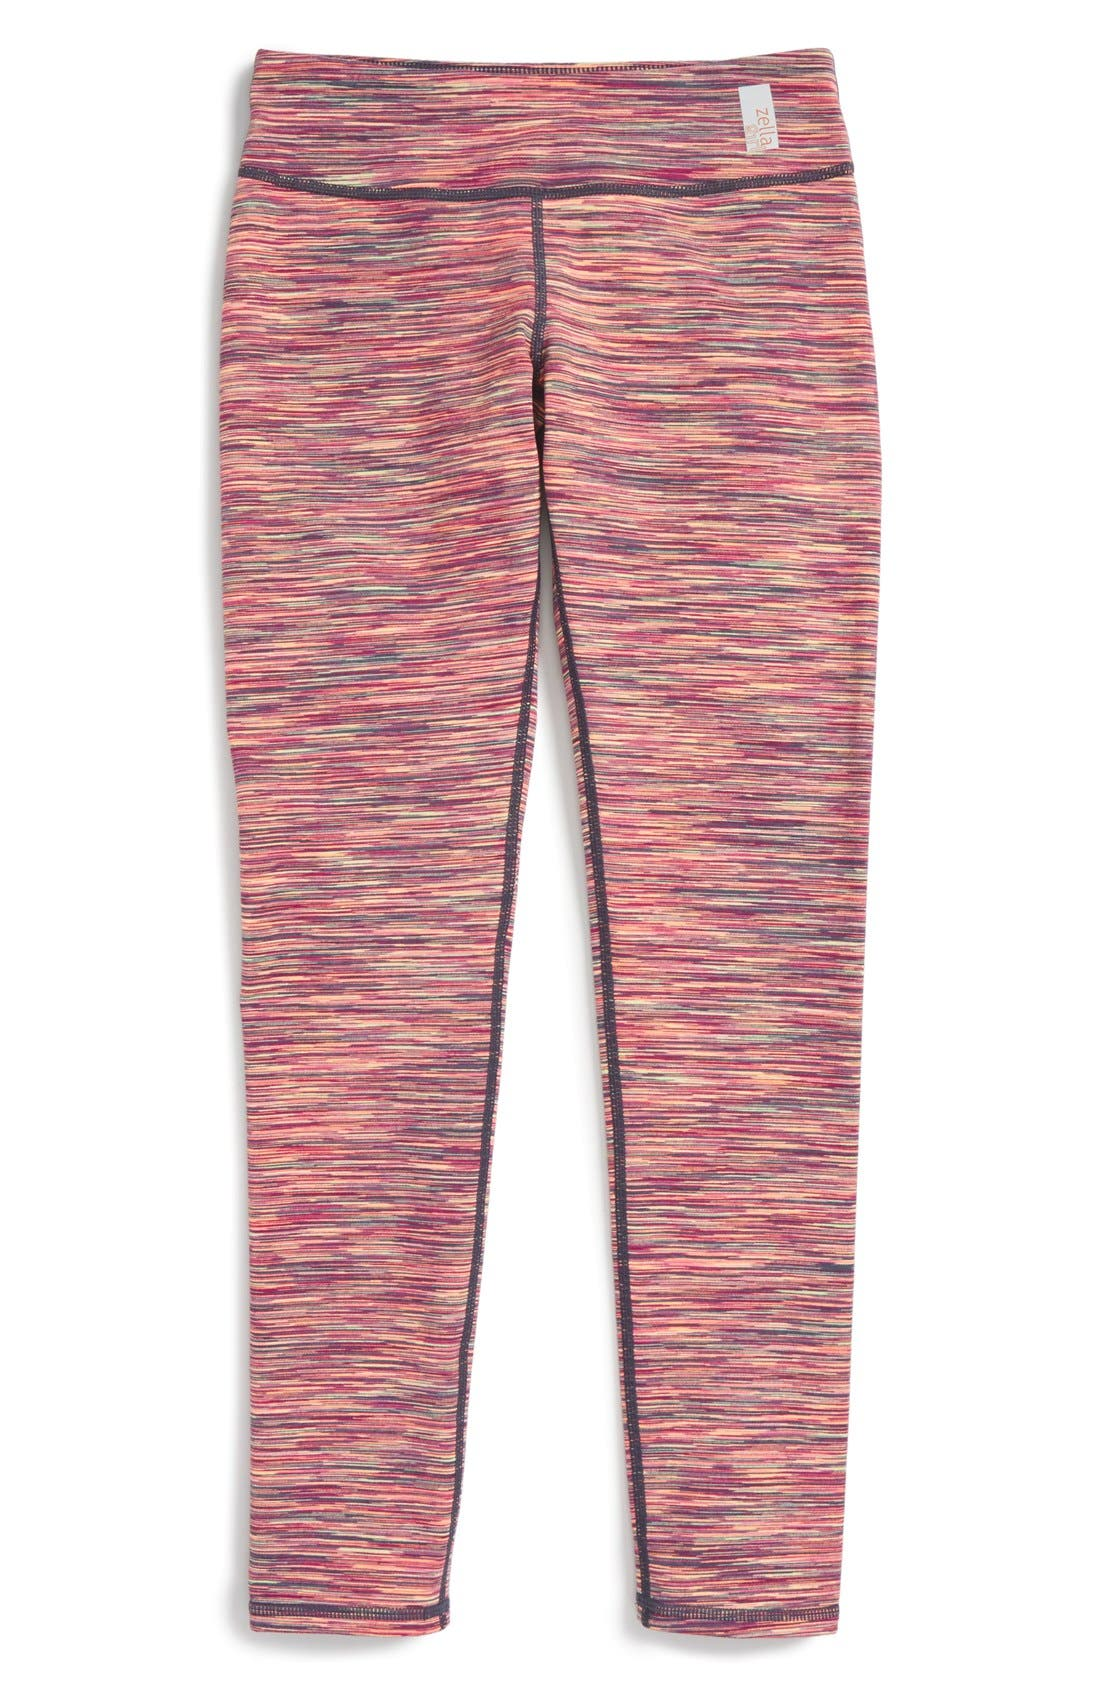 Main Image - Zella Girl 'Cosmic' Space Dye Leggings (Little Girls & Big Girls)